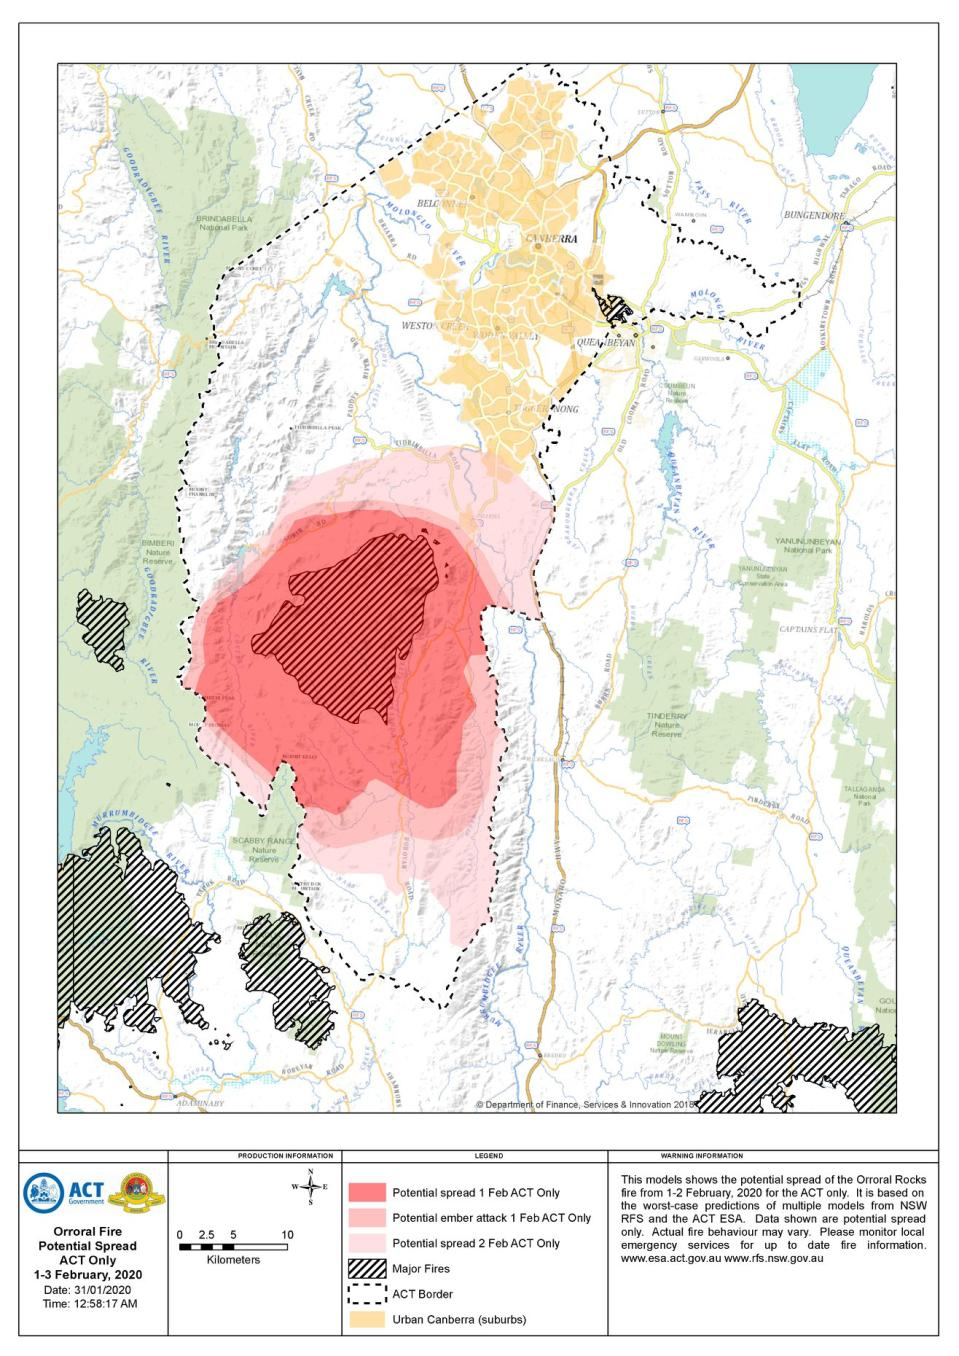 Predictive mapping of the fire this weekend. Source: ACT ESA